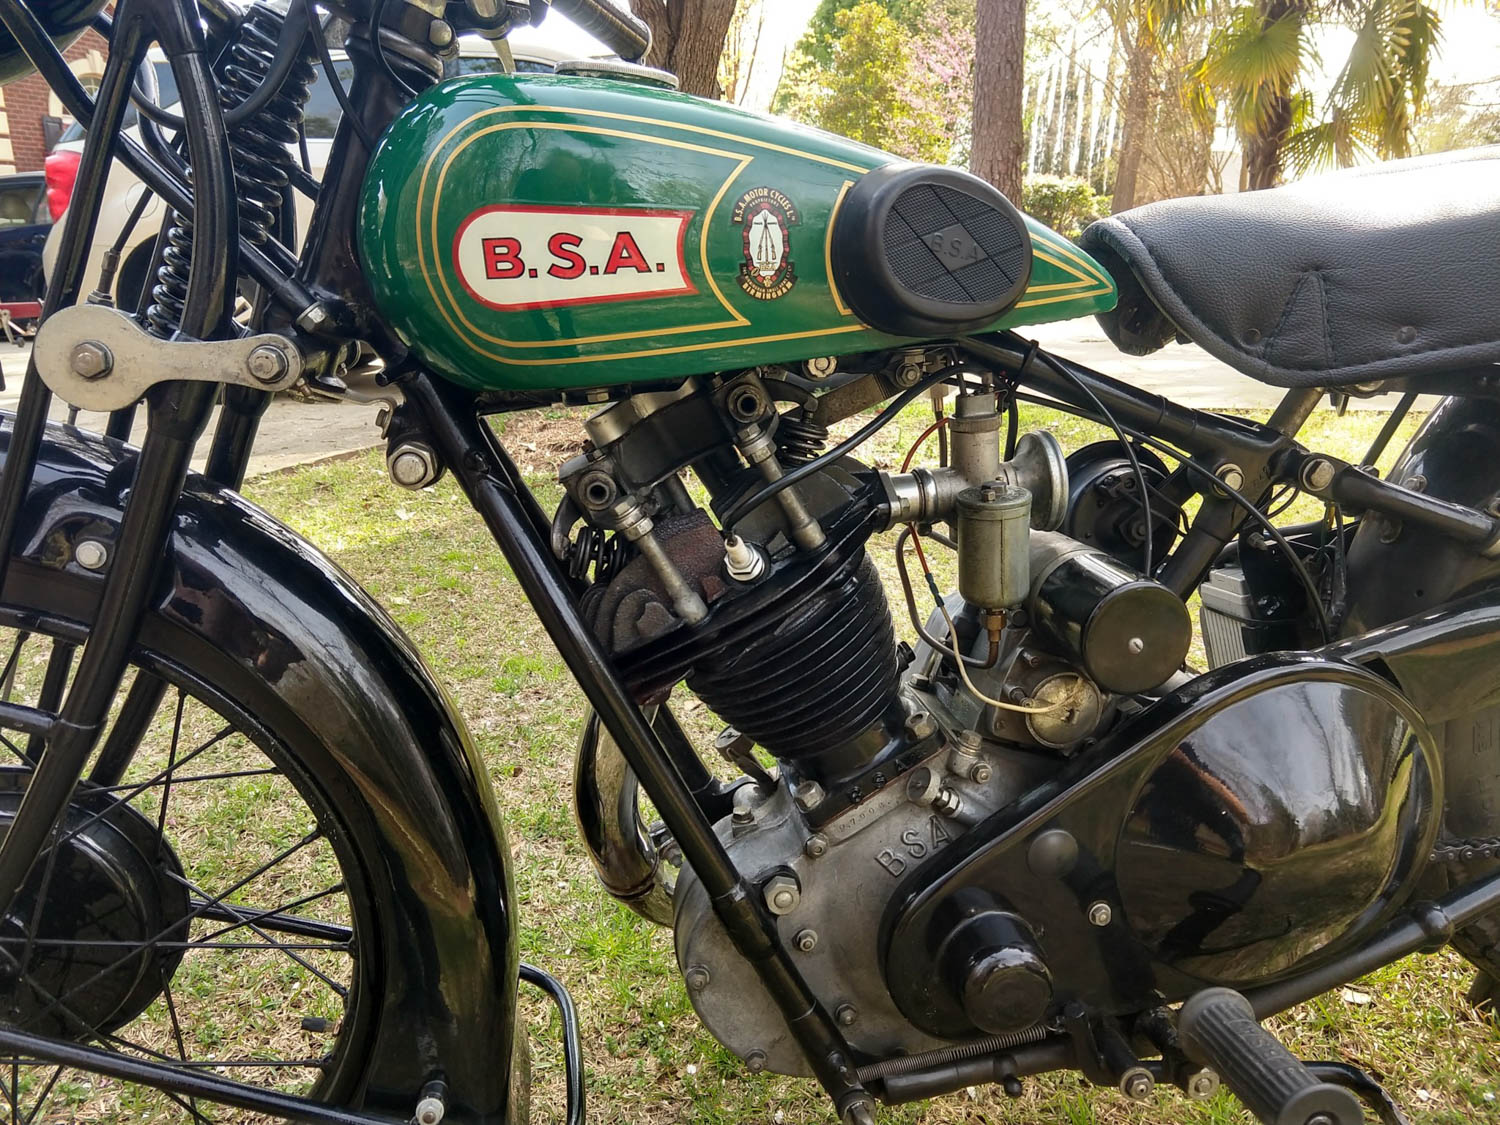 1928 BSA S28 Sloper gas tank